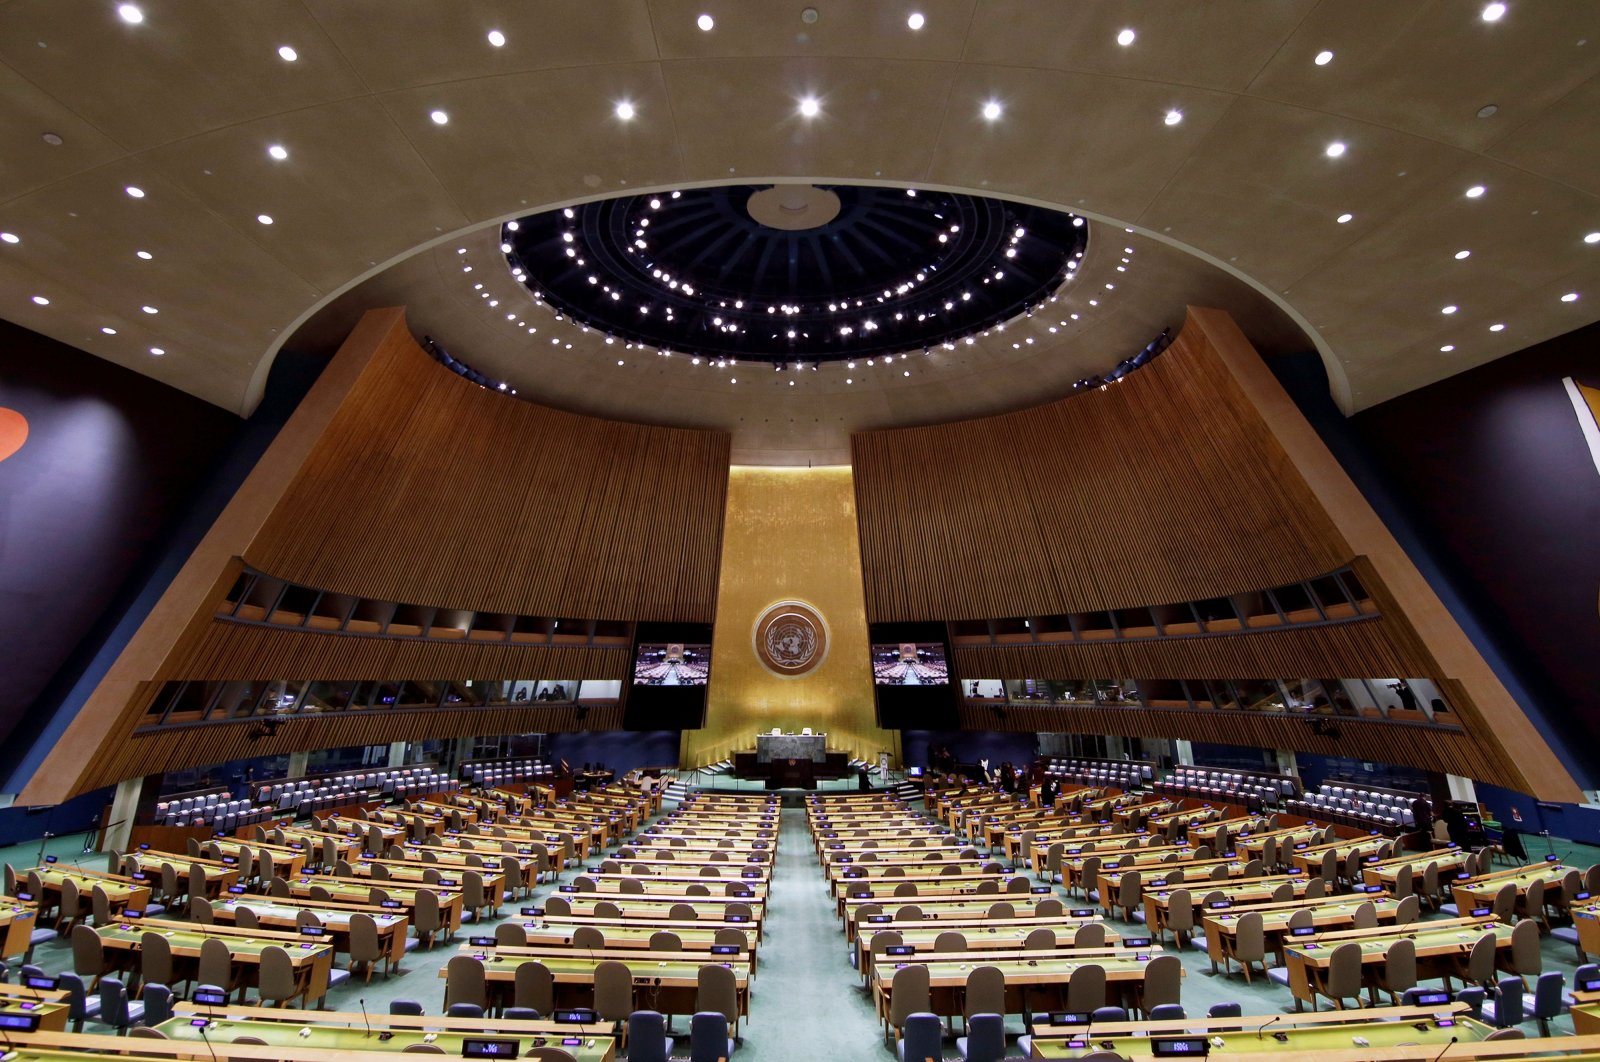 The U.N. General Assembly Hall is empty before the start of the SDG Moment event as part of the U.N. General Assembly 76th session General Debate at United Nations Headquarters, in New York, U.S., Sept. 20, 2021. (Reuters Photo)